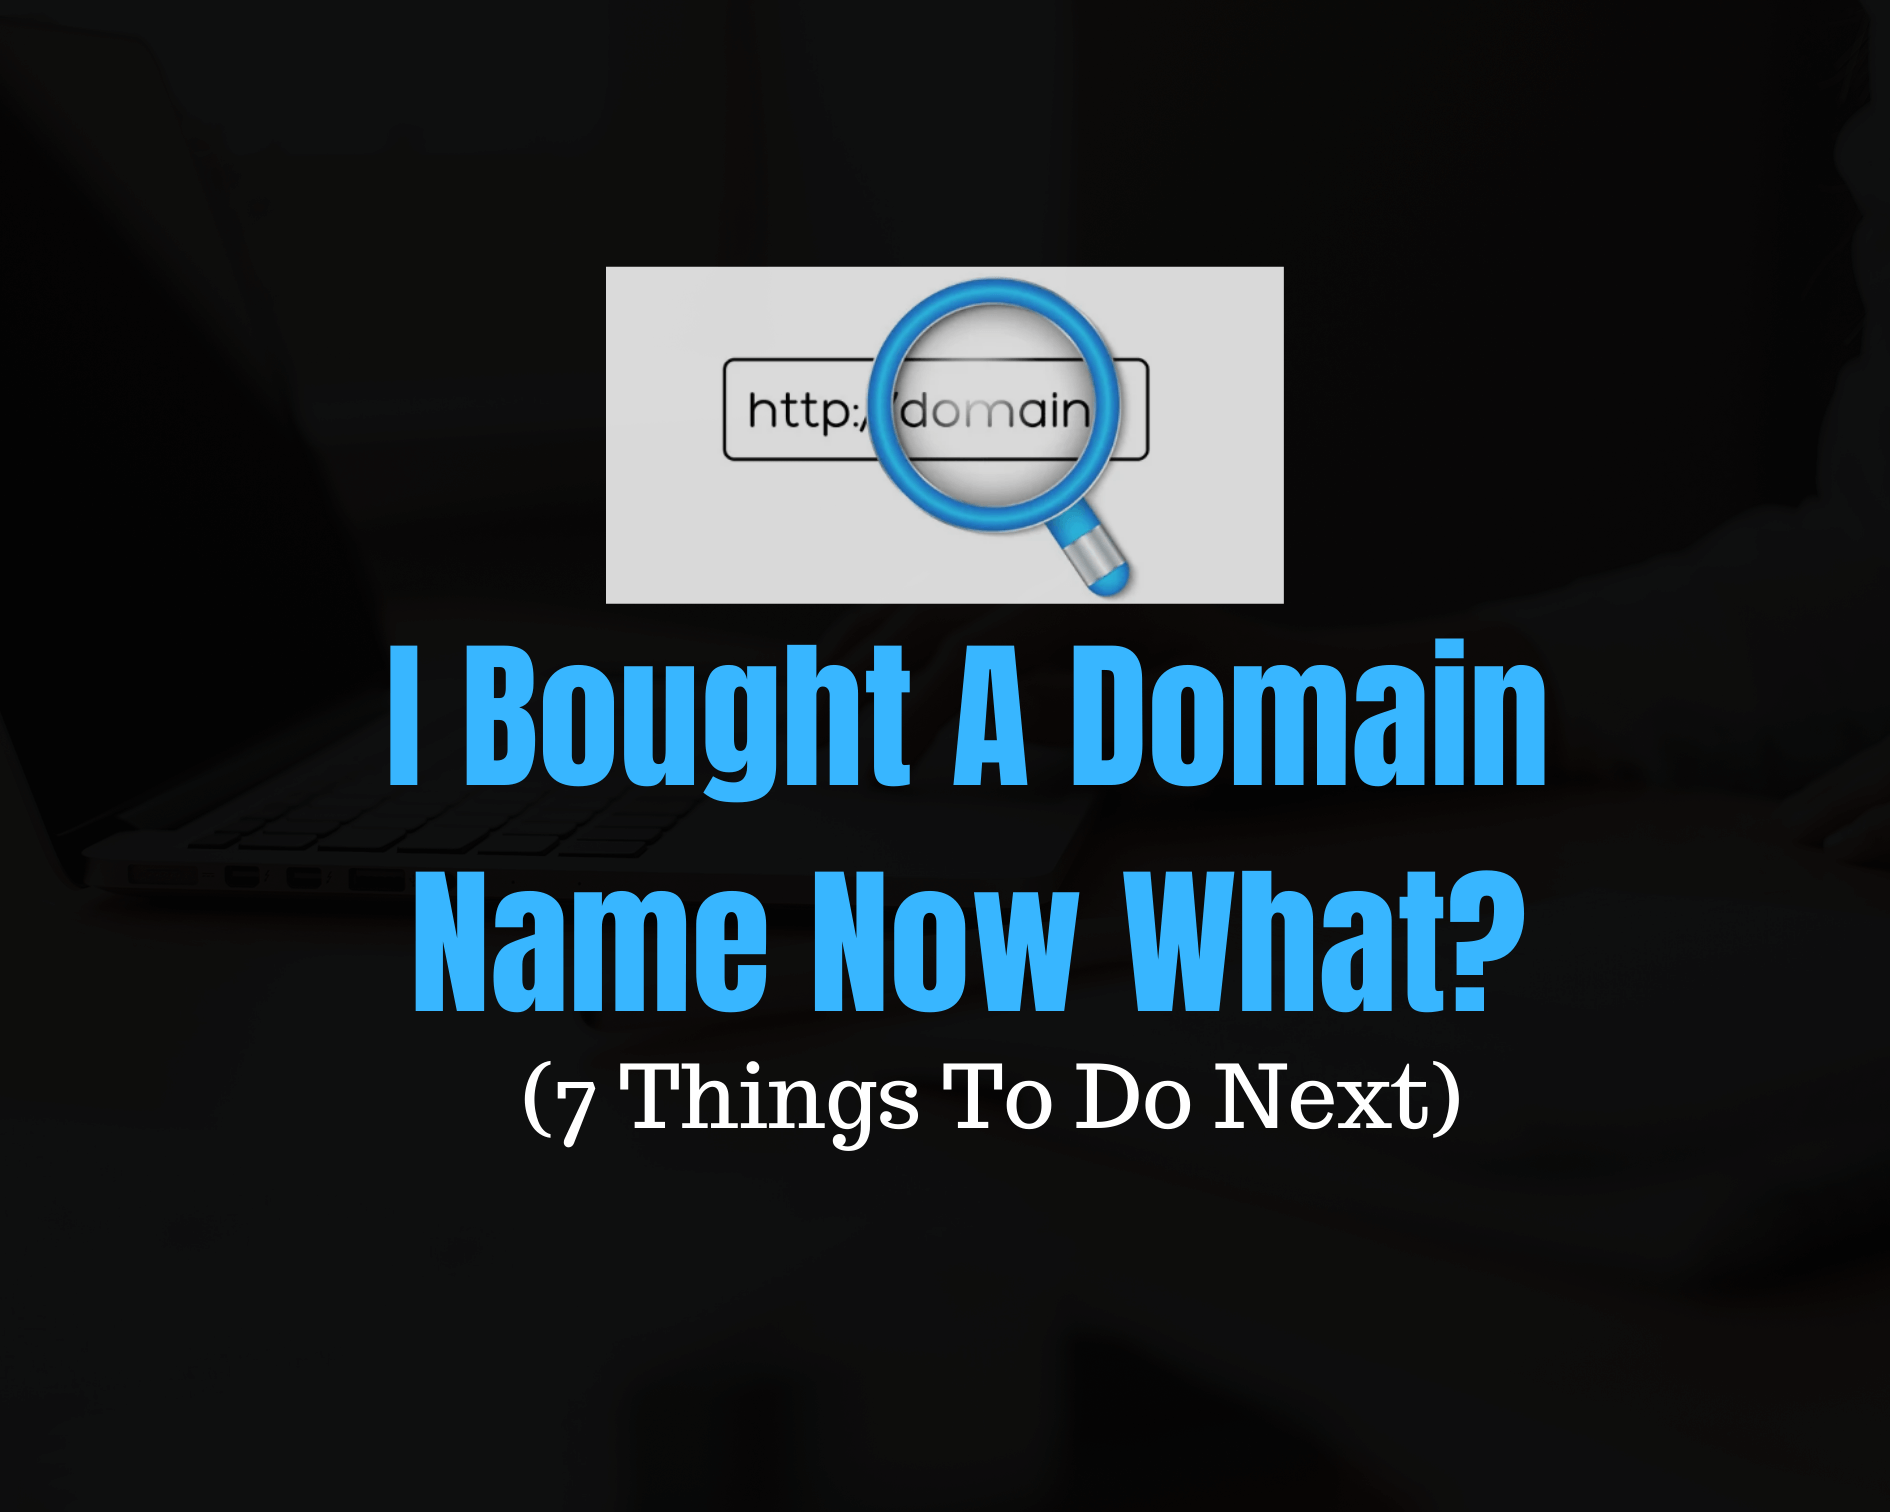 I Bought A Domain Name Now What? (7 Things To Do Next)